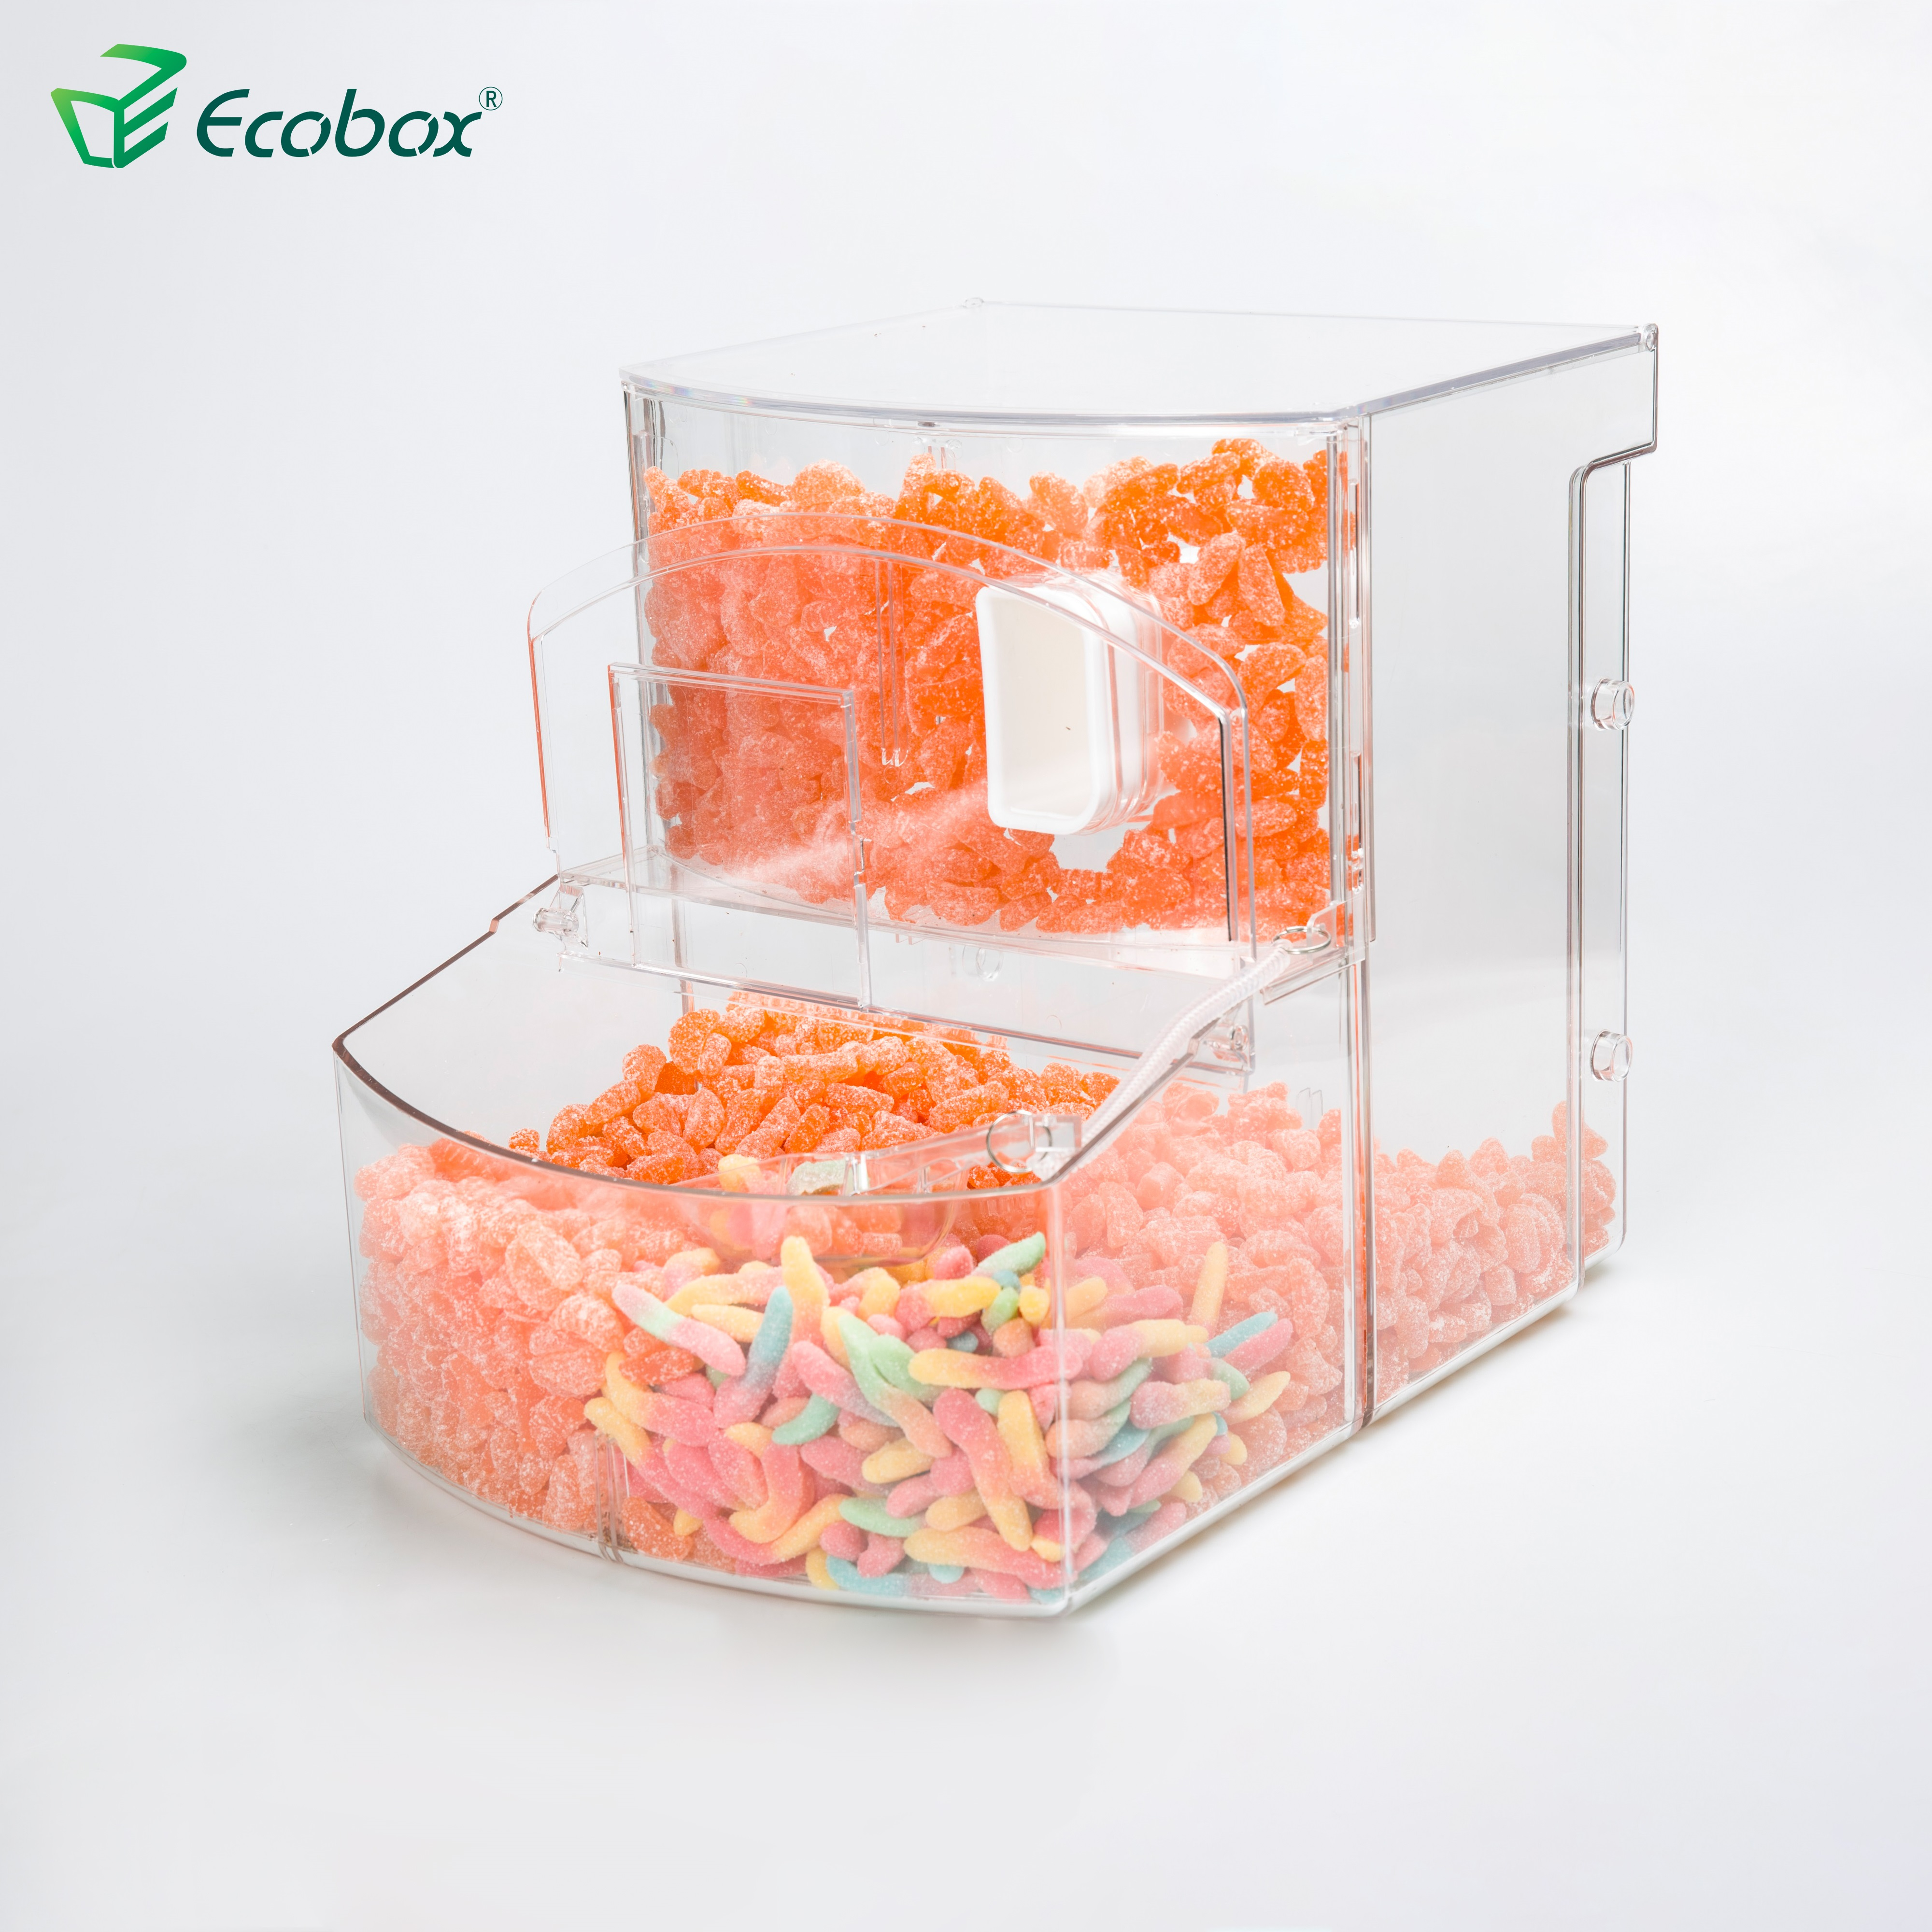 Transparent wholesale plastic box bulk food containers biscuit candy storage bins scoop bin